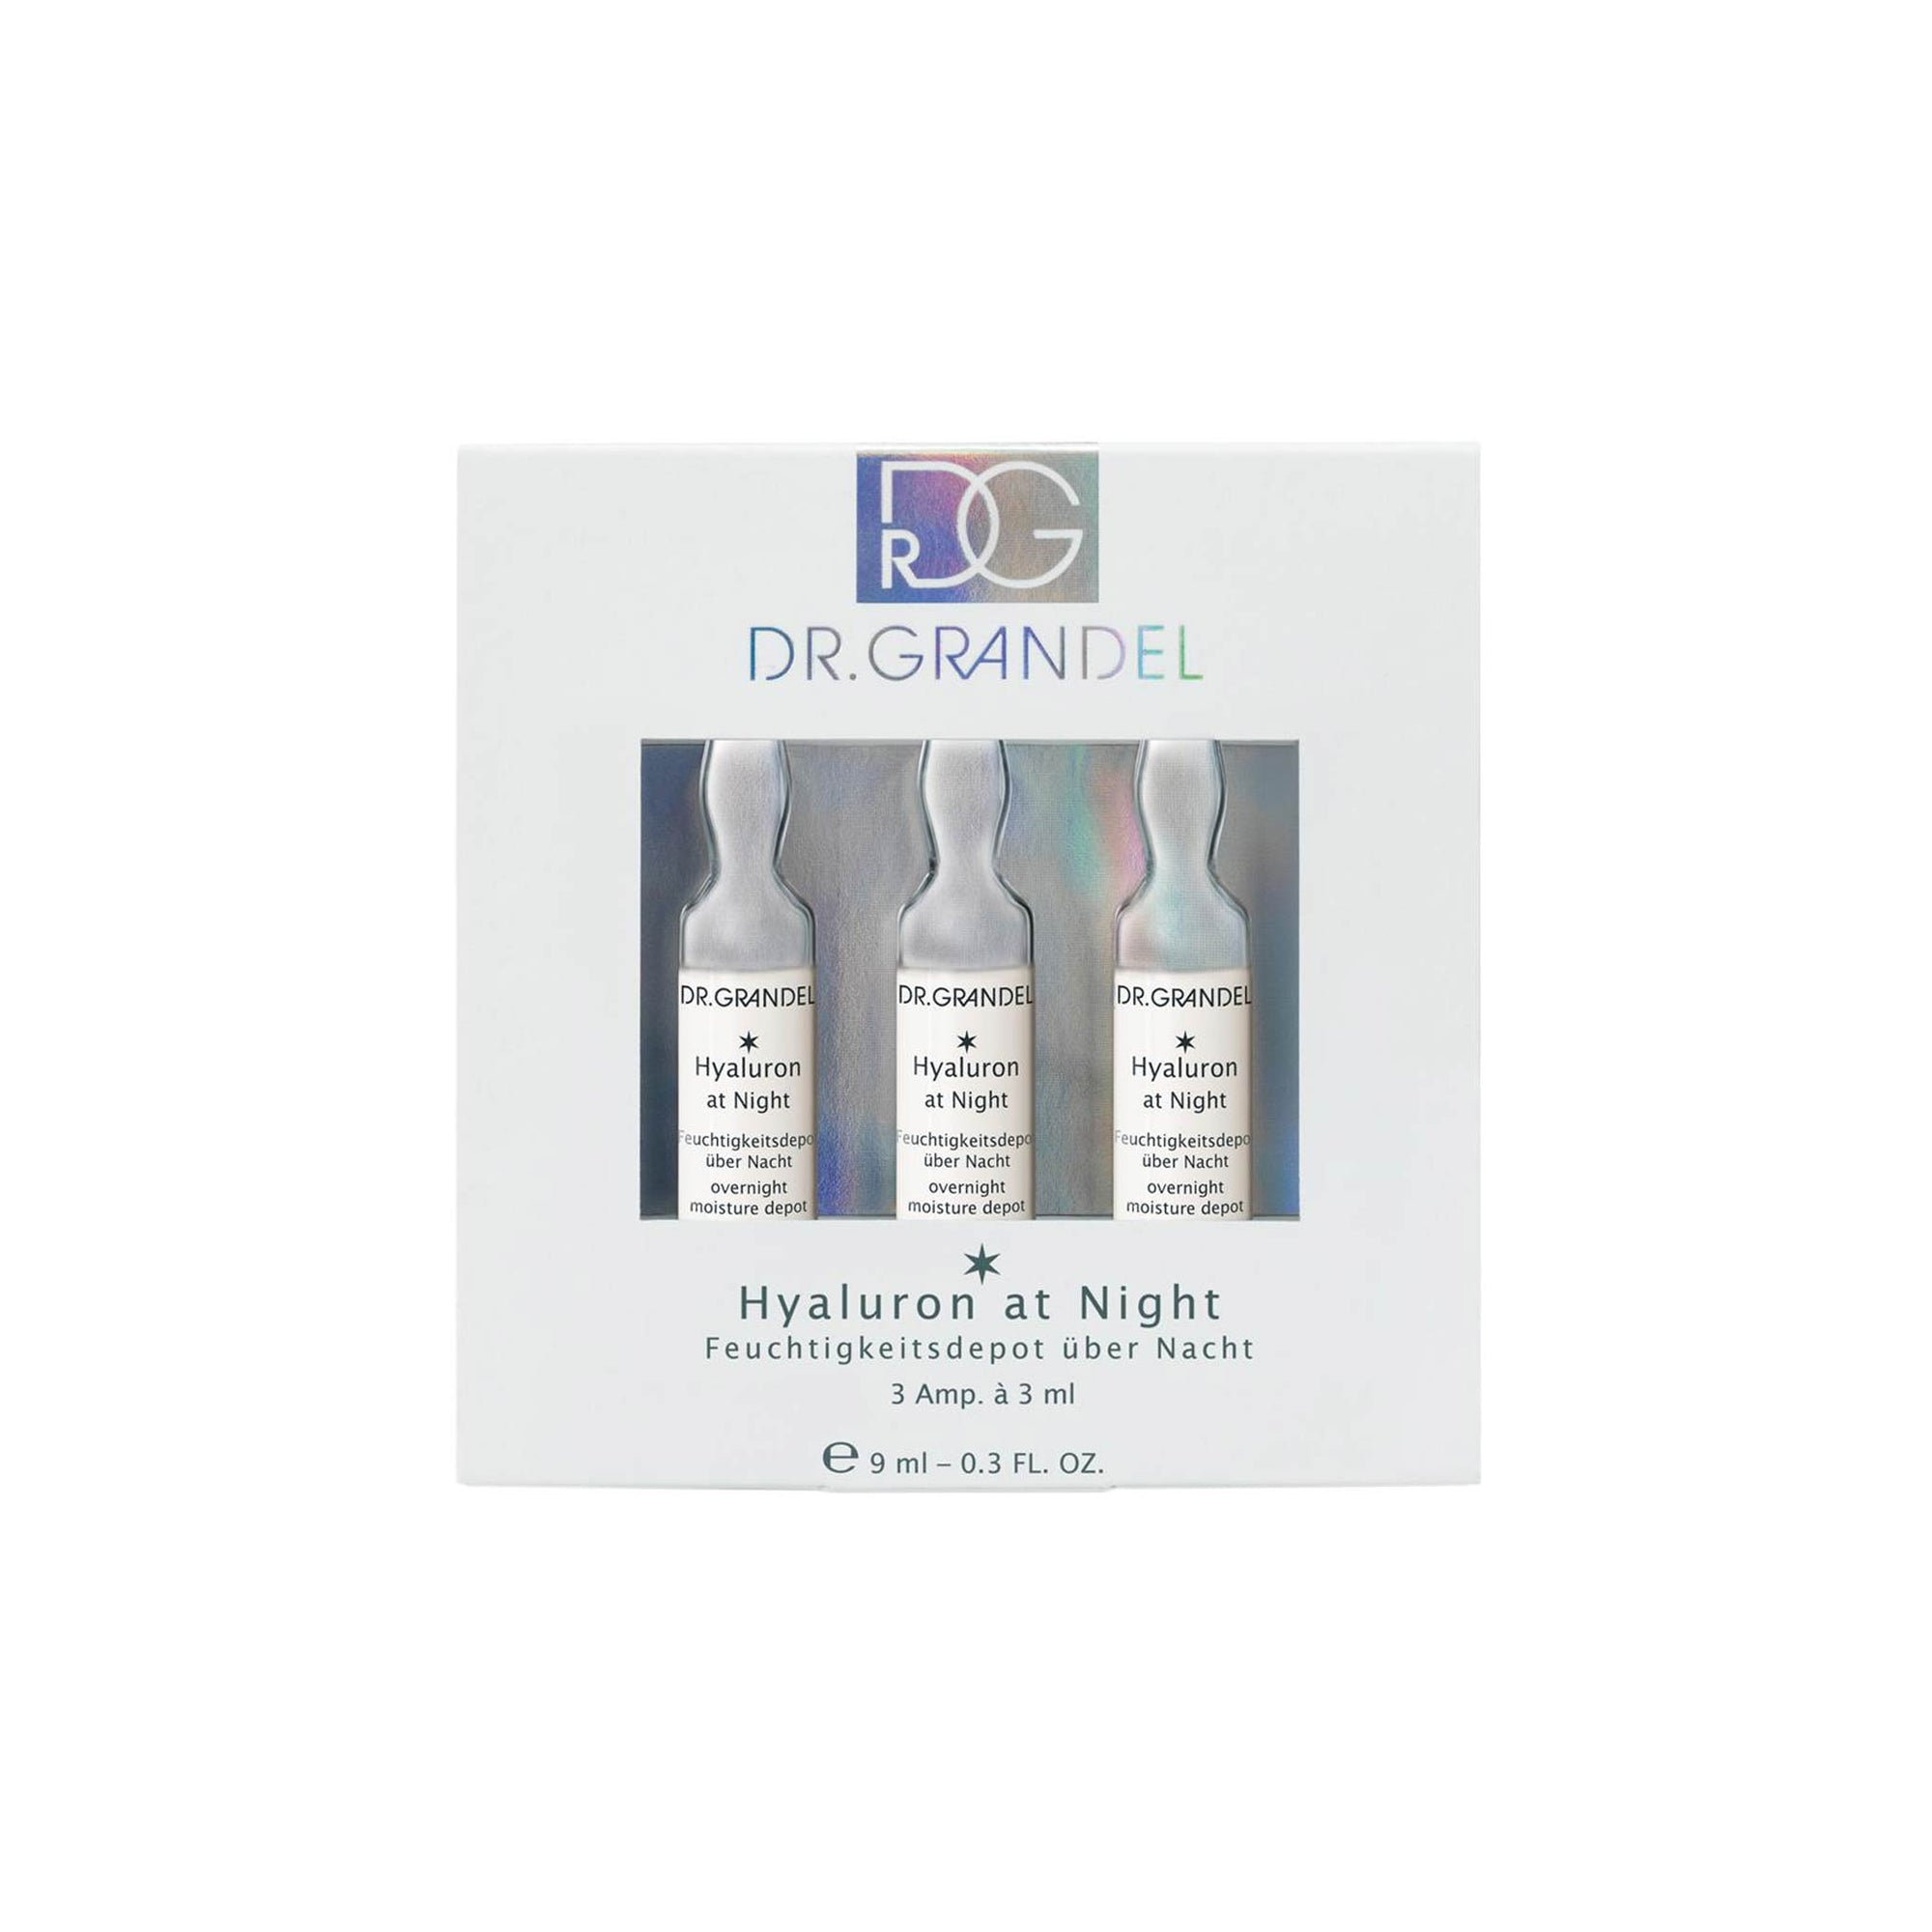 Dr Grandel Ampoules Hyaluron at Night 3 x 3 ml